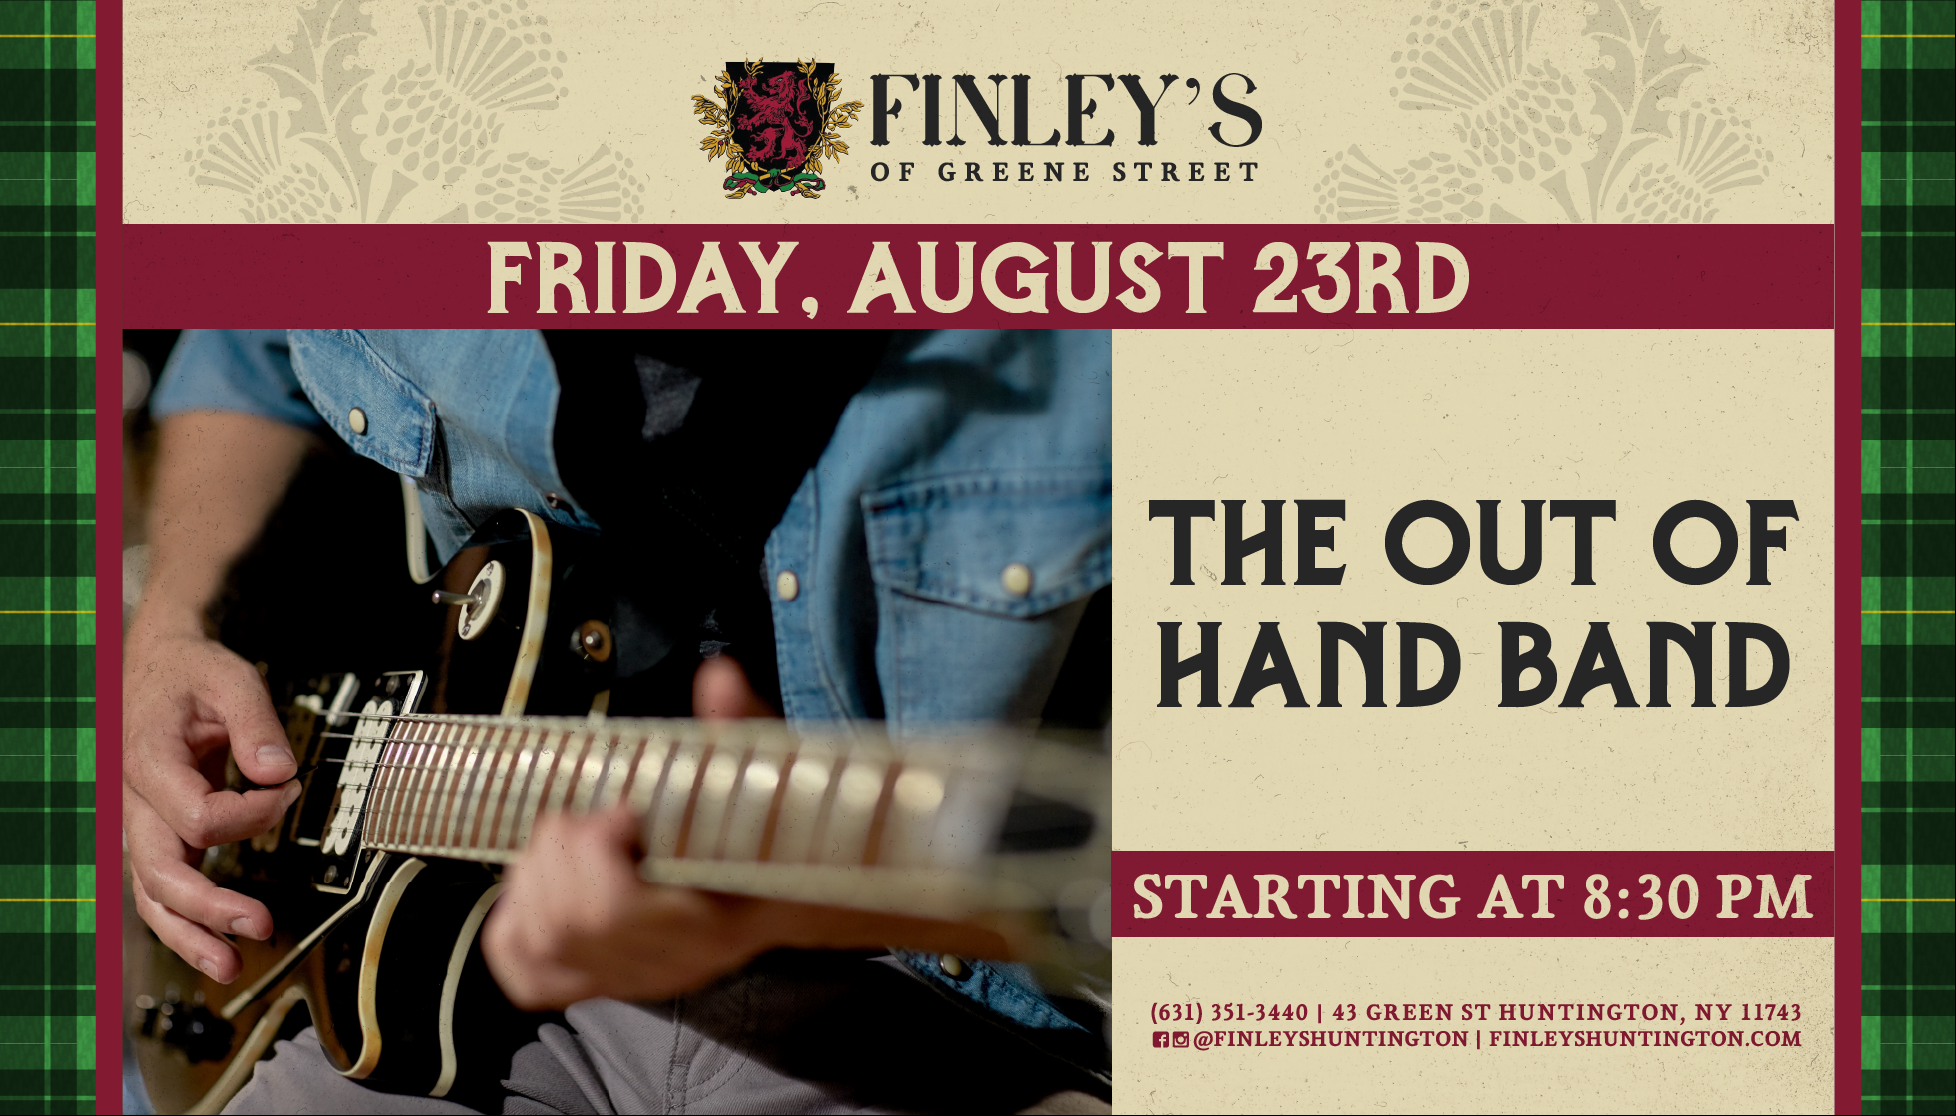 Flyer for The Out of Hand Band on August 23rd at 8:30pm.